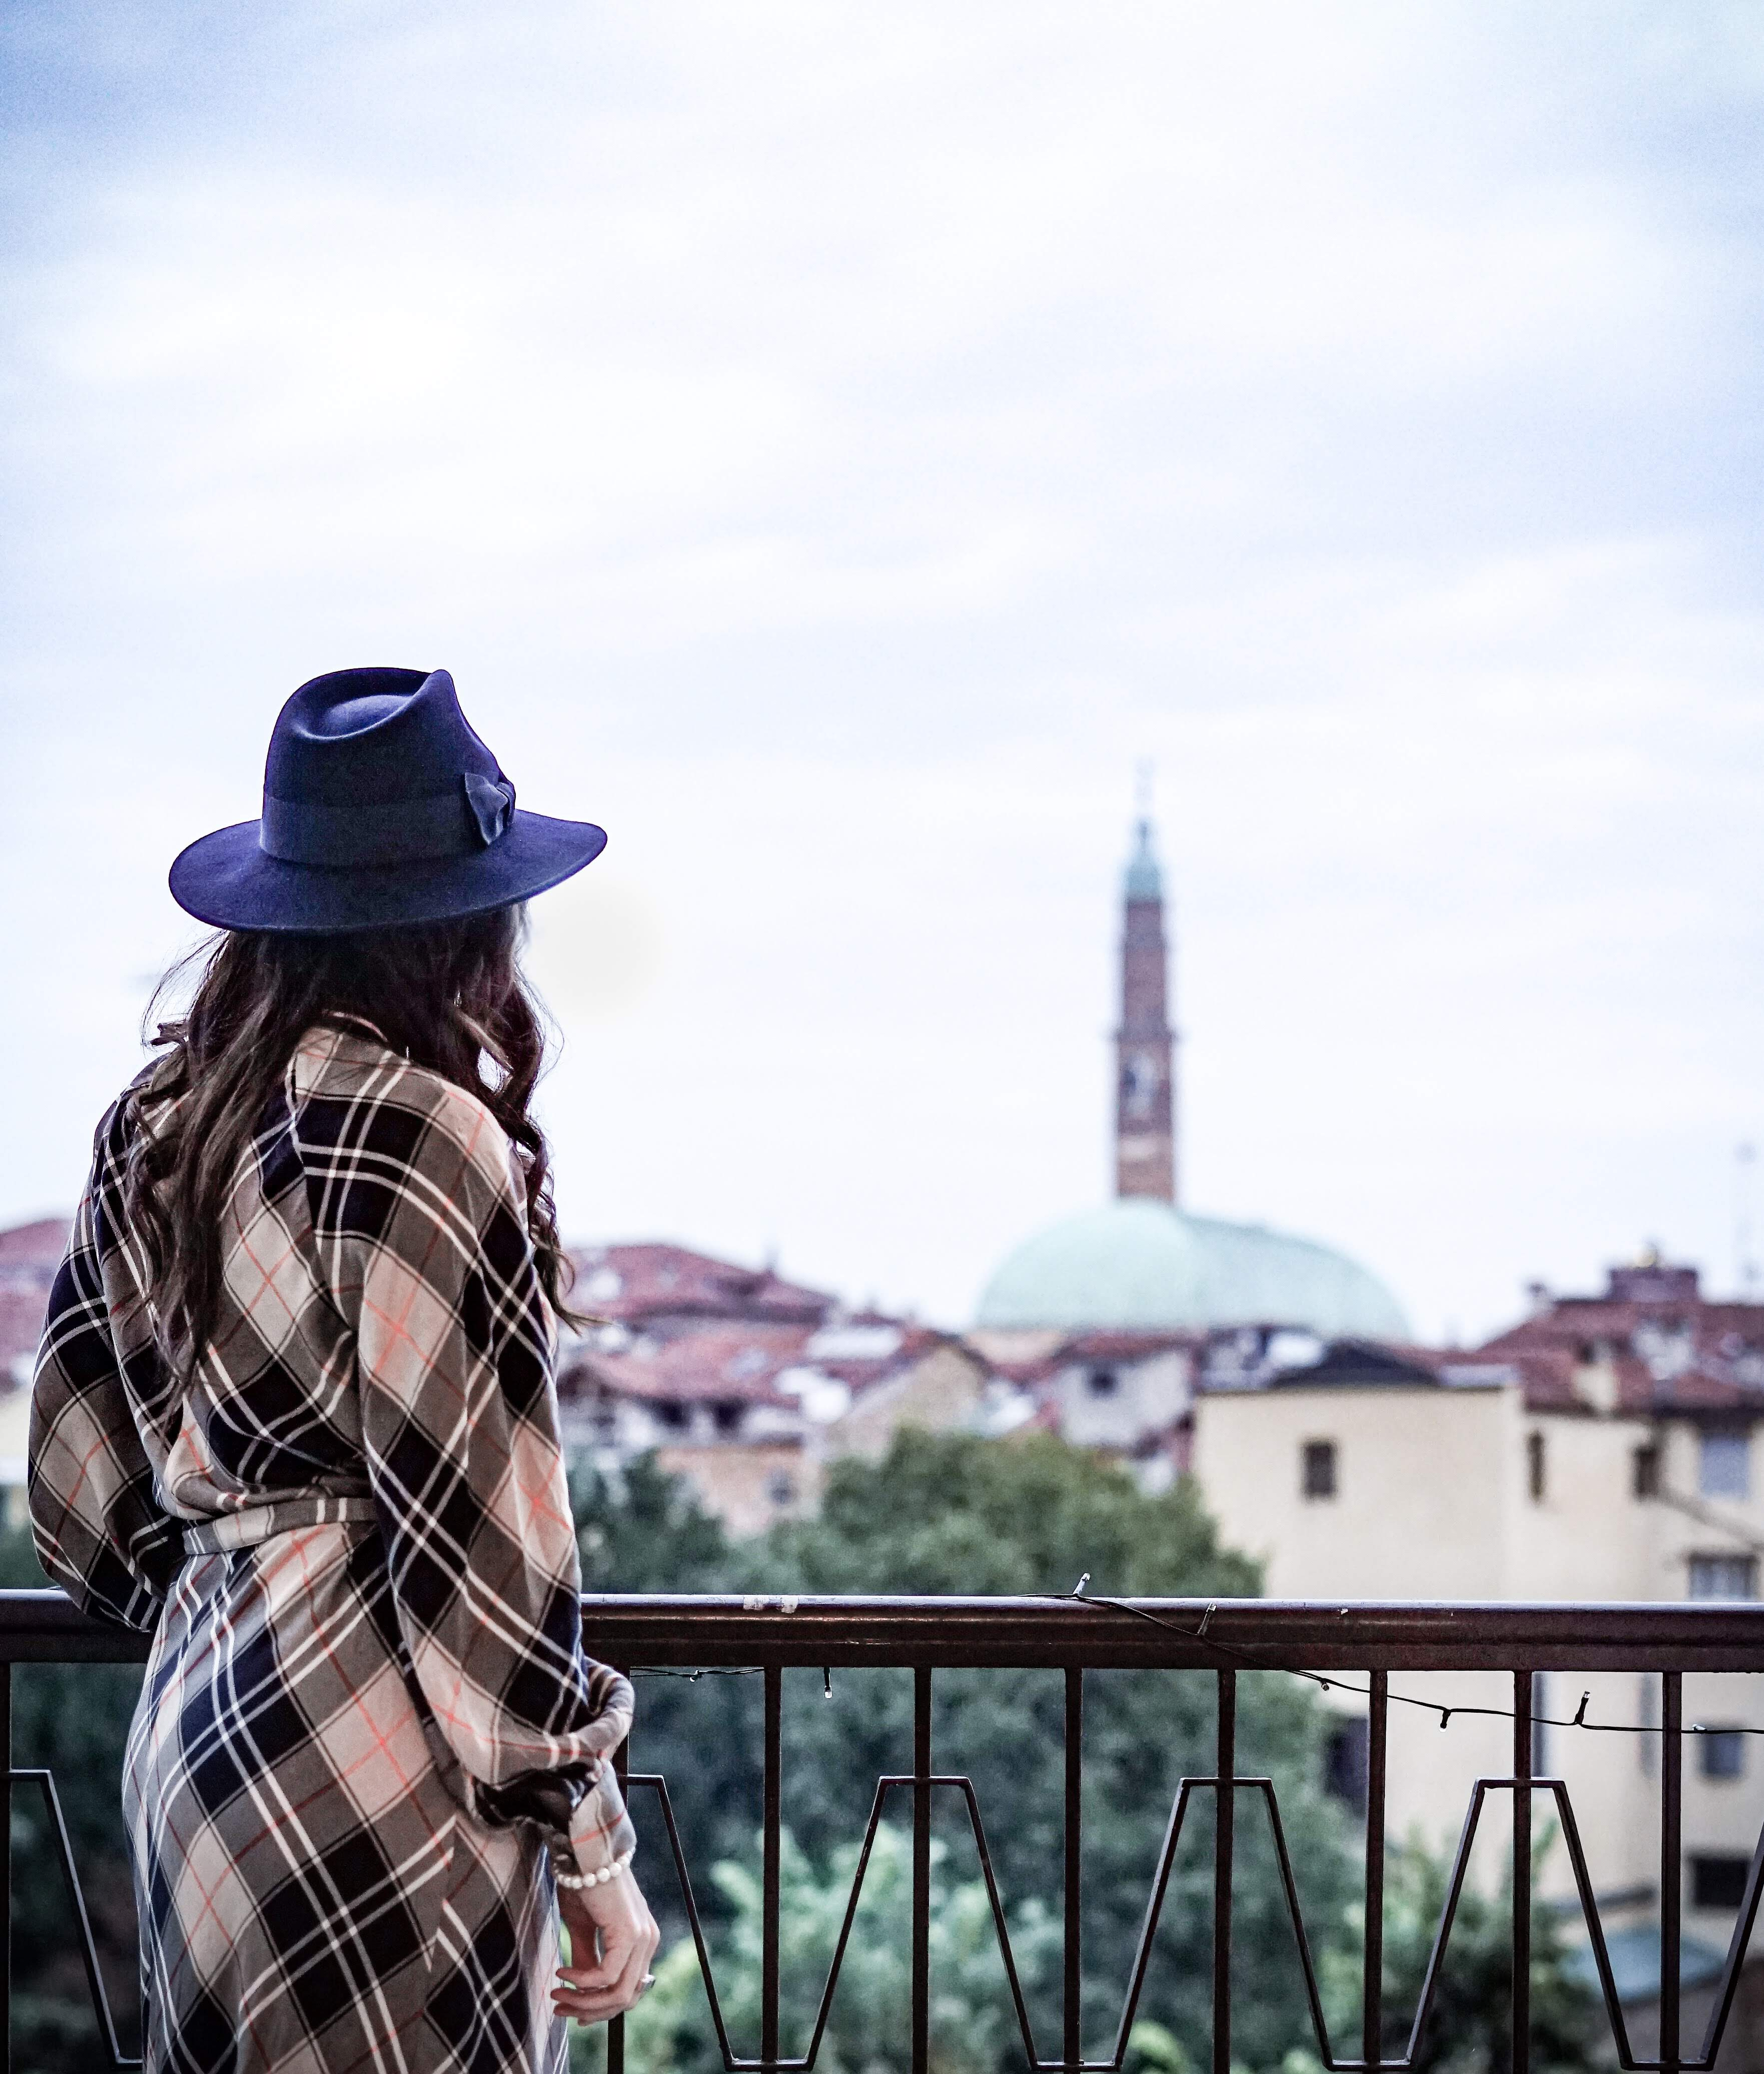 A woman with a hat admiring the view of the city.